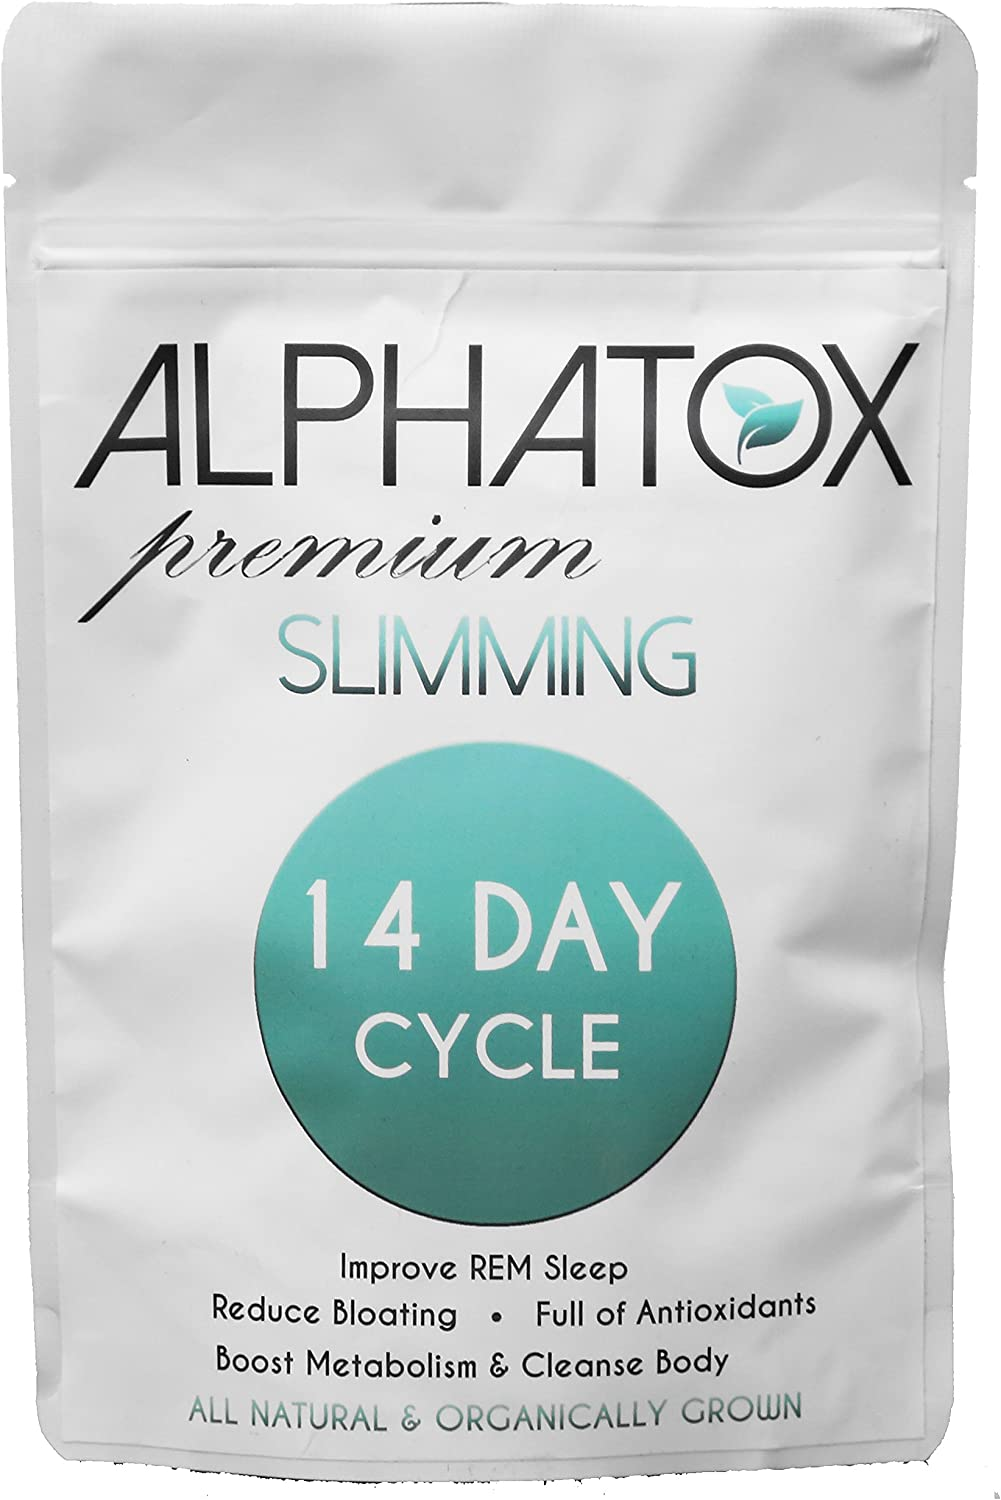 Alphatox 14 Day Premium Slimming Tea Cycle Lose Weight Naturally, Reduce Bloating and Improve REM Sleep 14 Herbal Tea Bags Organic Tea Full of Anti-oxidants